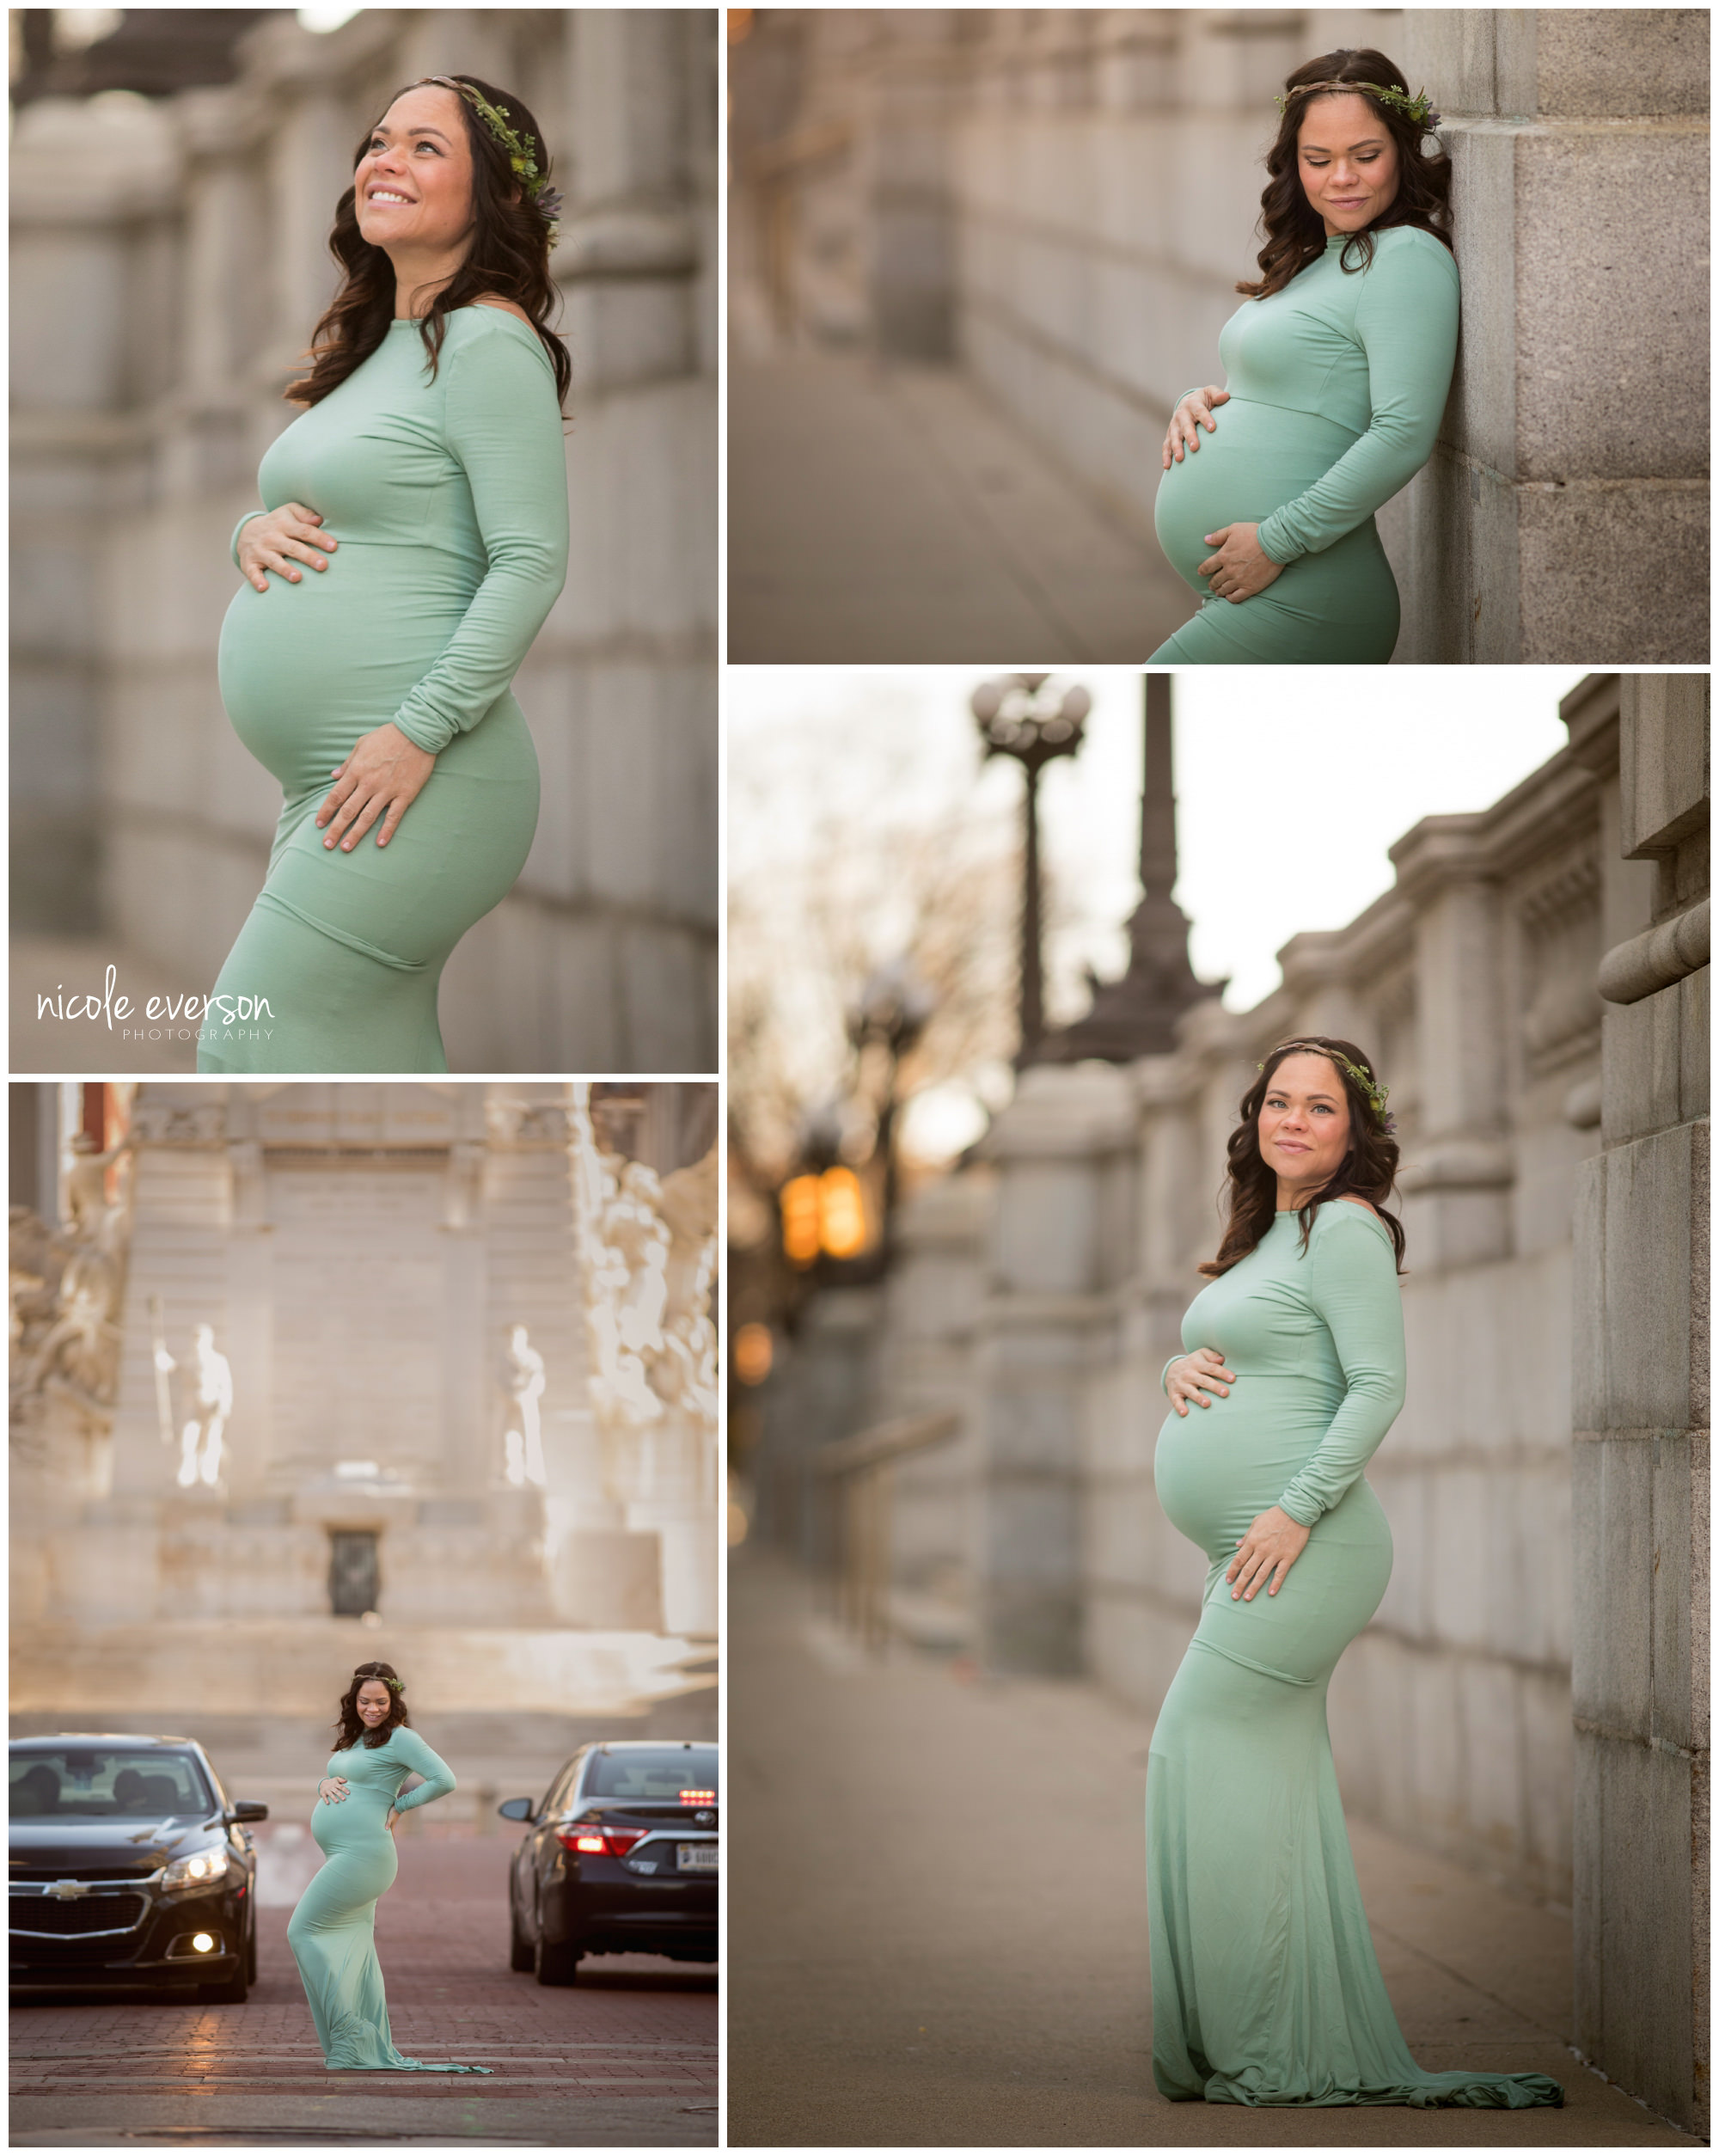 Tallahassee maternity photography by Nicole Everson Photography